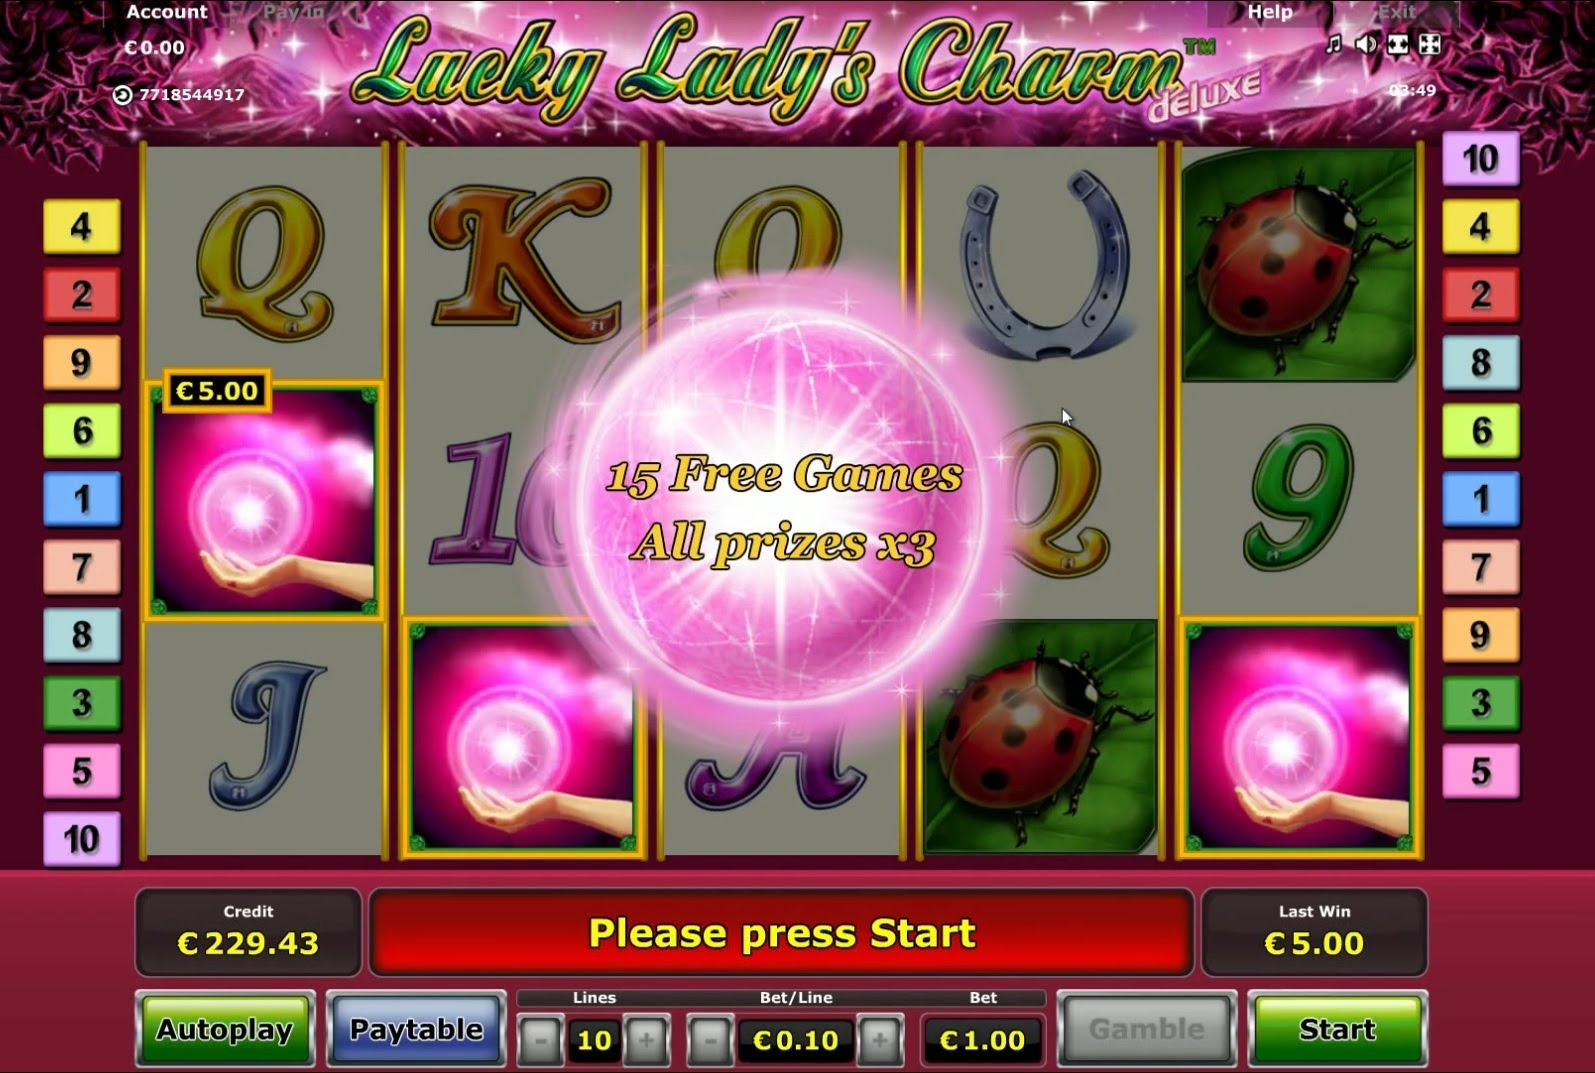 online casino winner lucky lady charm